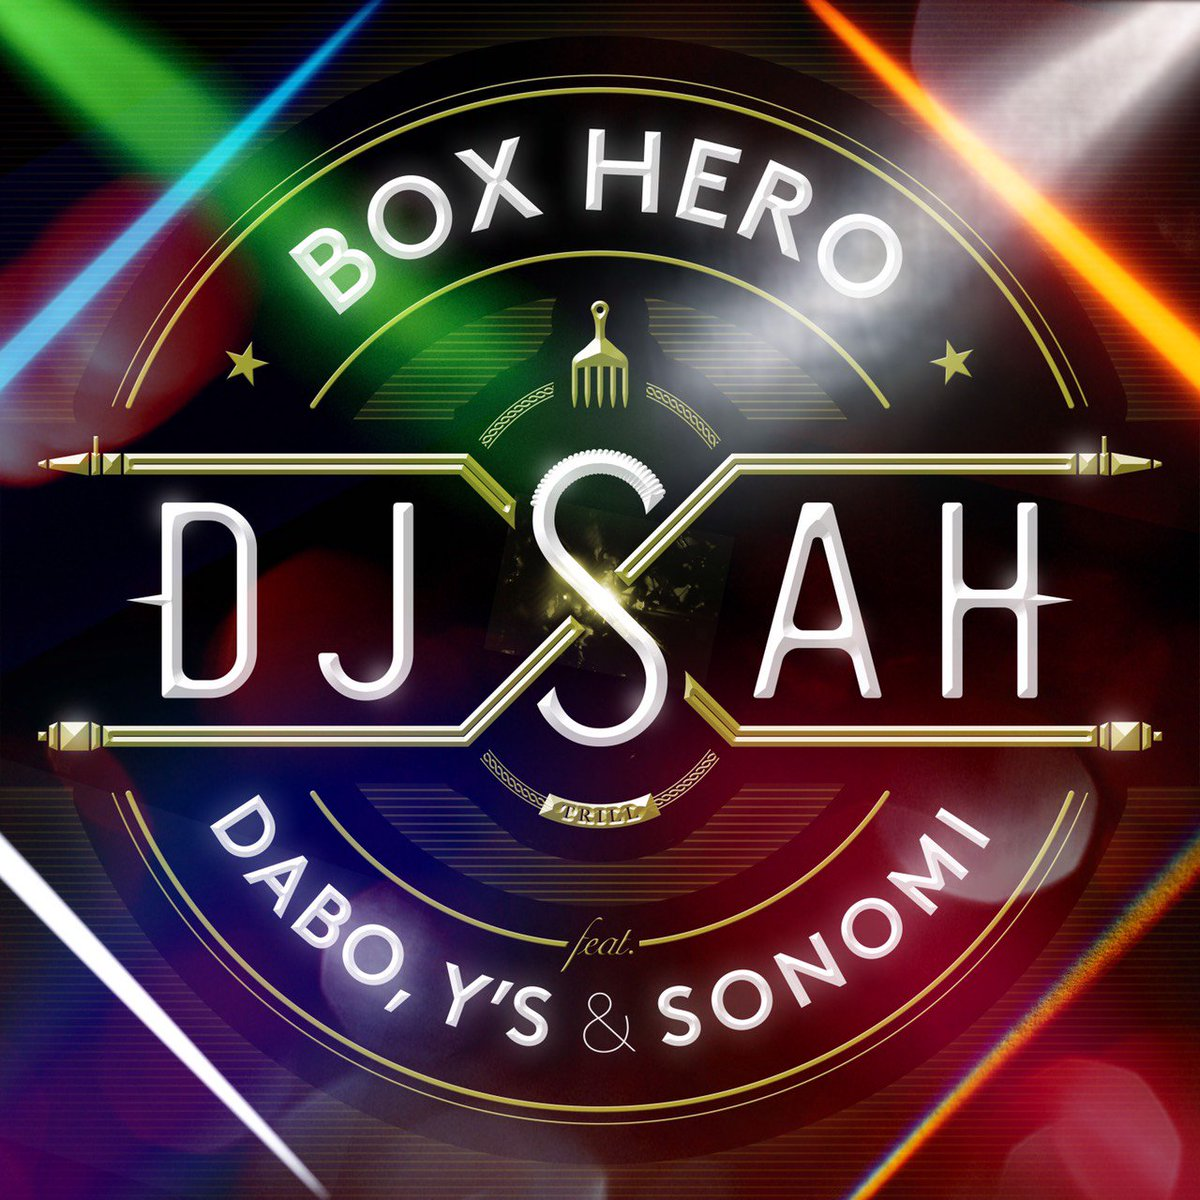 遂に配信開始&MV解禁   DJ SAH #BOXHERO  feat.DABO,Y'S & SONOMI  Produced by DJ WATARAI  MUSIC VIDEO→ https://t.co/CBJ4s95oBO https://t.co/wlyU8q2RhA